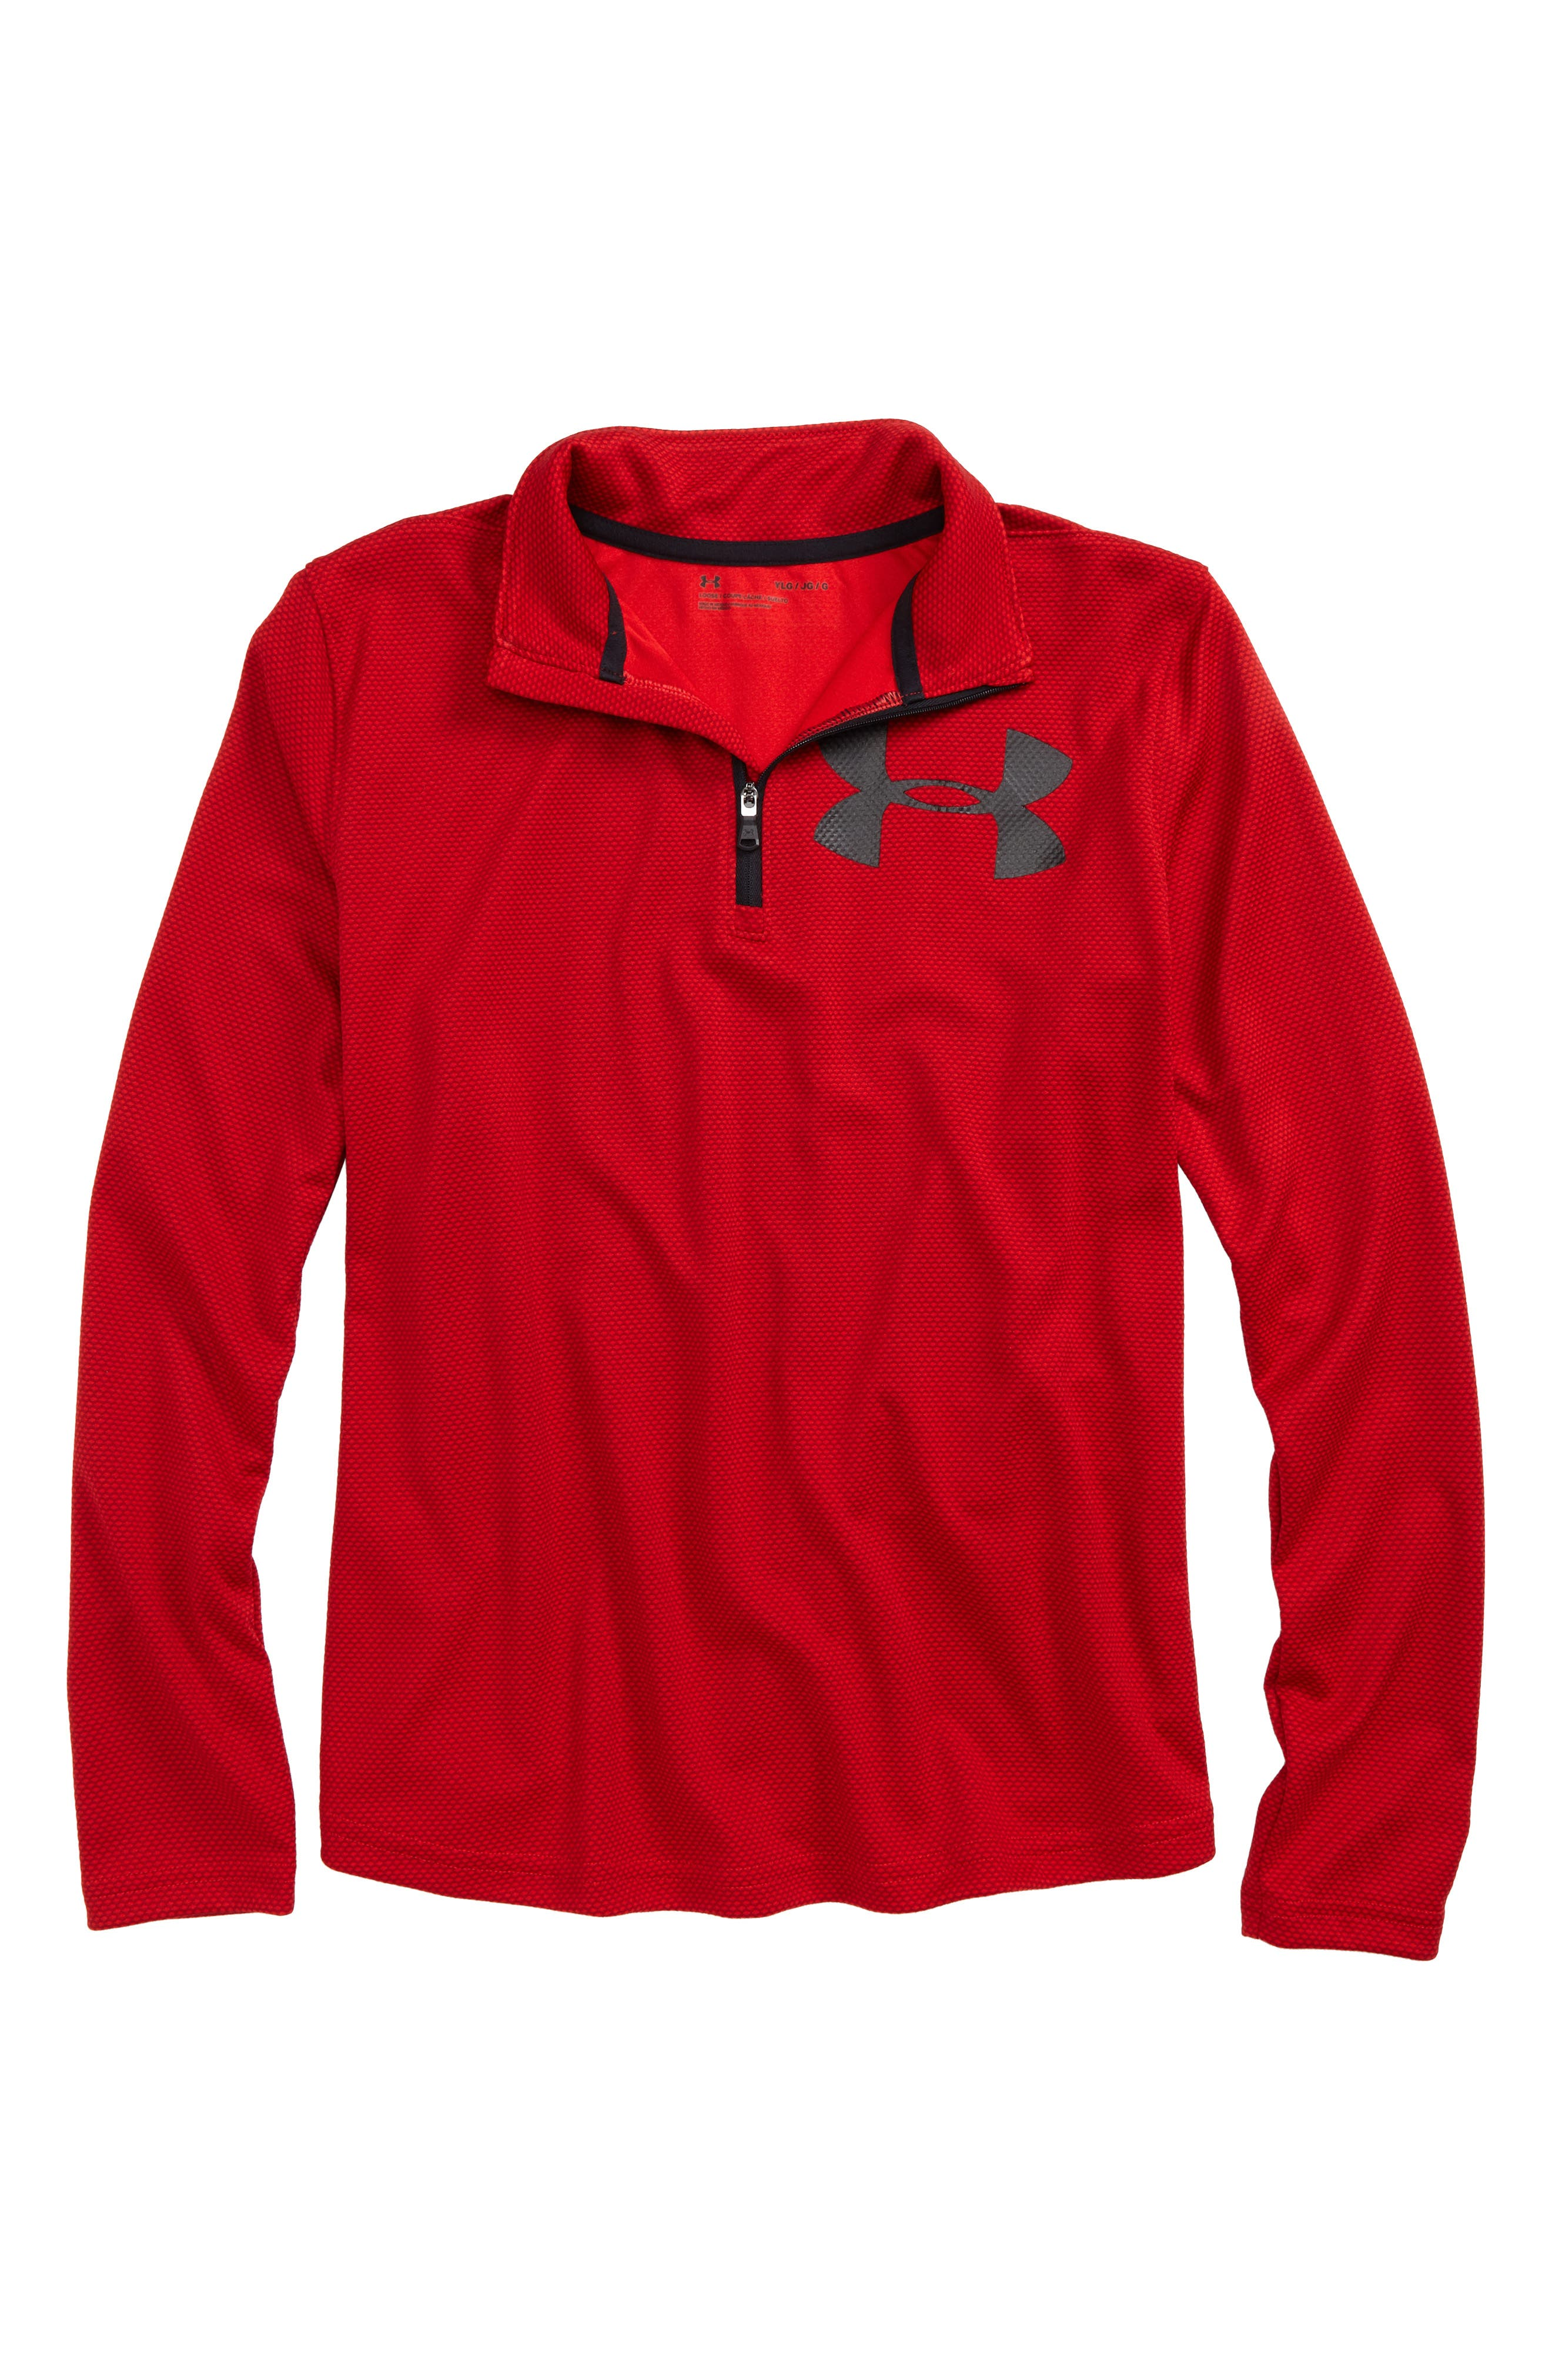 Textured Quarter Zip Top,                             Main thumbnail 1, color,                             Red/ Black